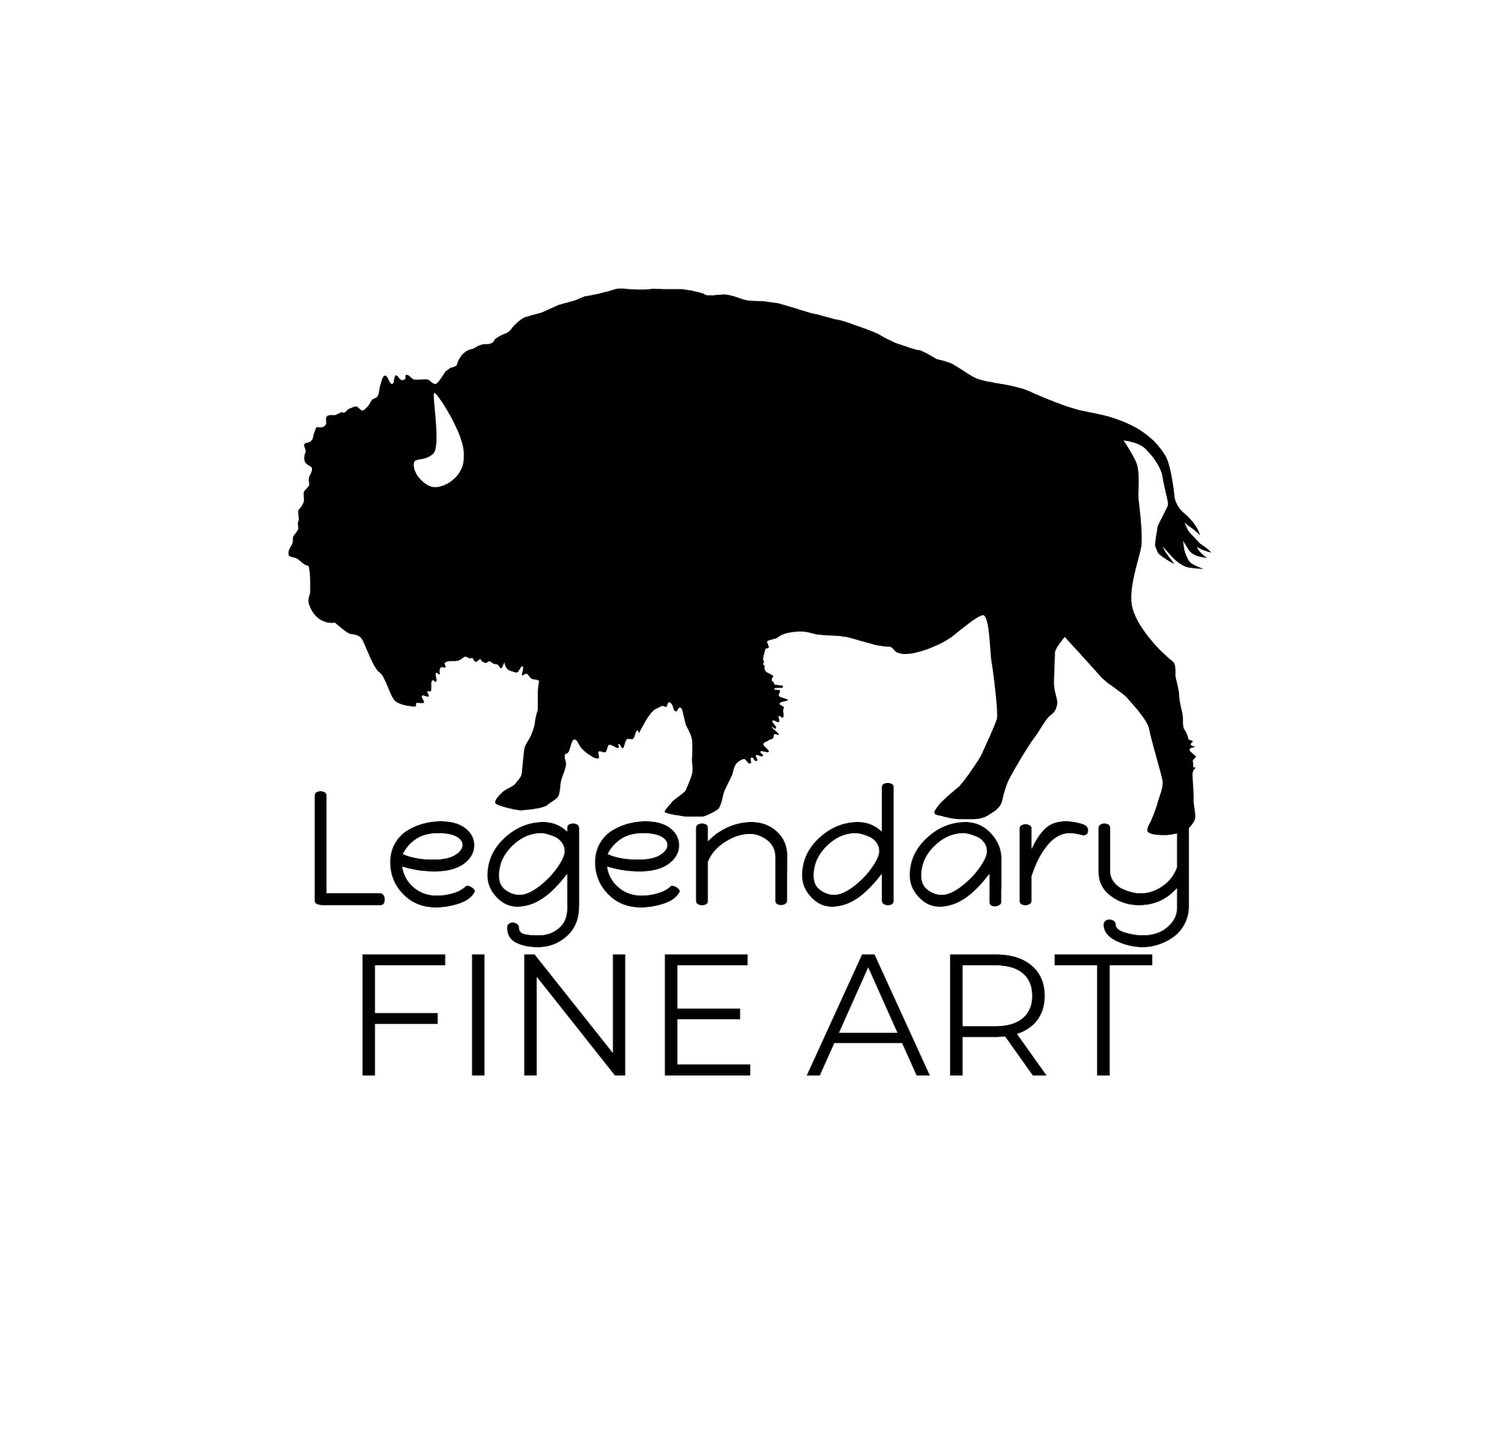 Legendary Fine Art